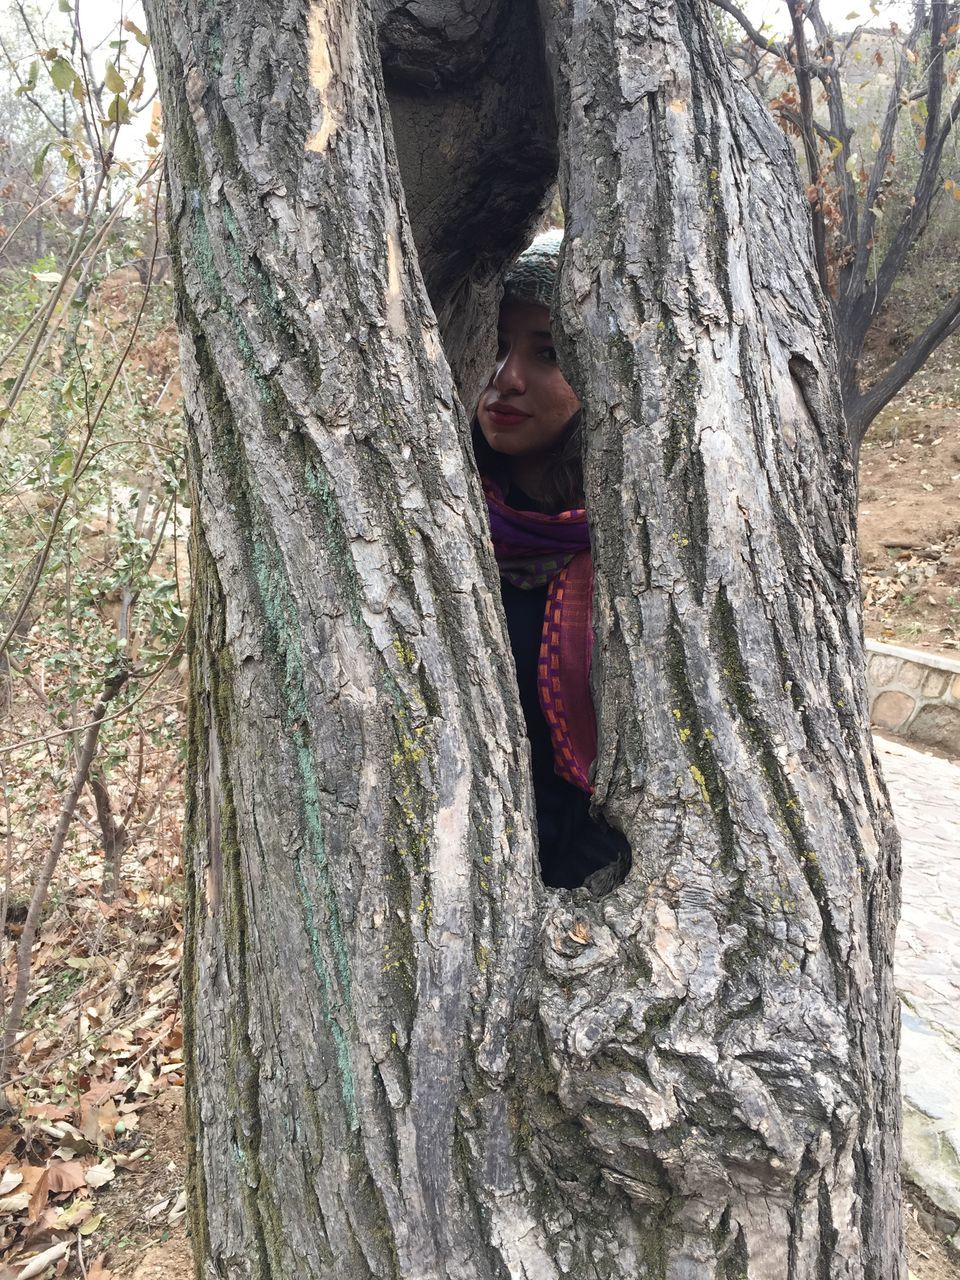 tree trunk, tree, leisure activity, hugging, real people, day, nature, one person, outdoors, bark, growth, textured, looking at camera, lifestyles, childhood, portrait, rope swing, smiling, branch, young adult, young women